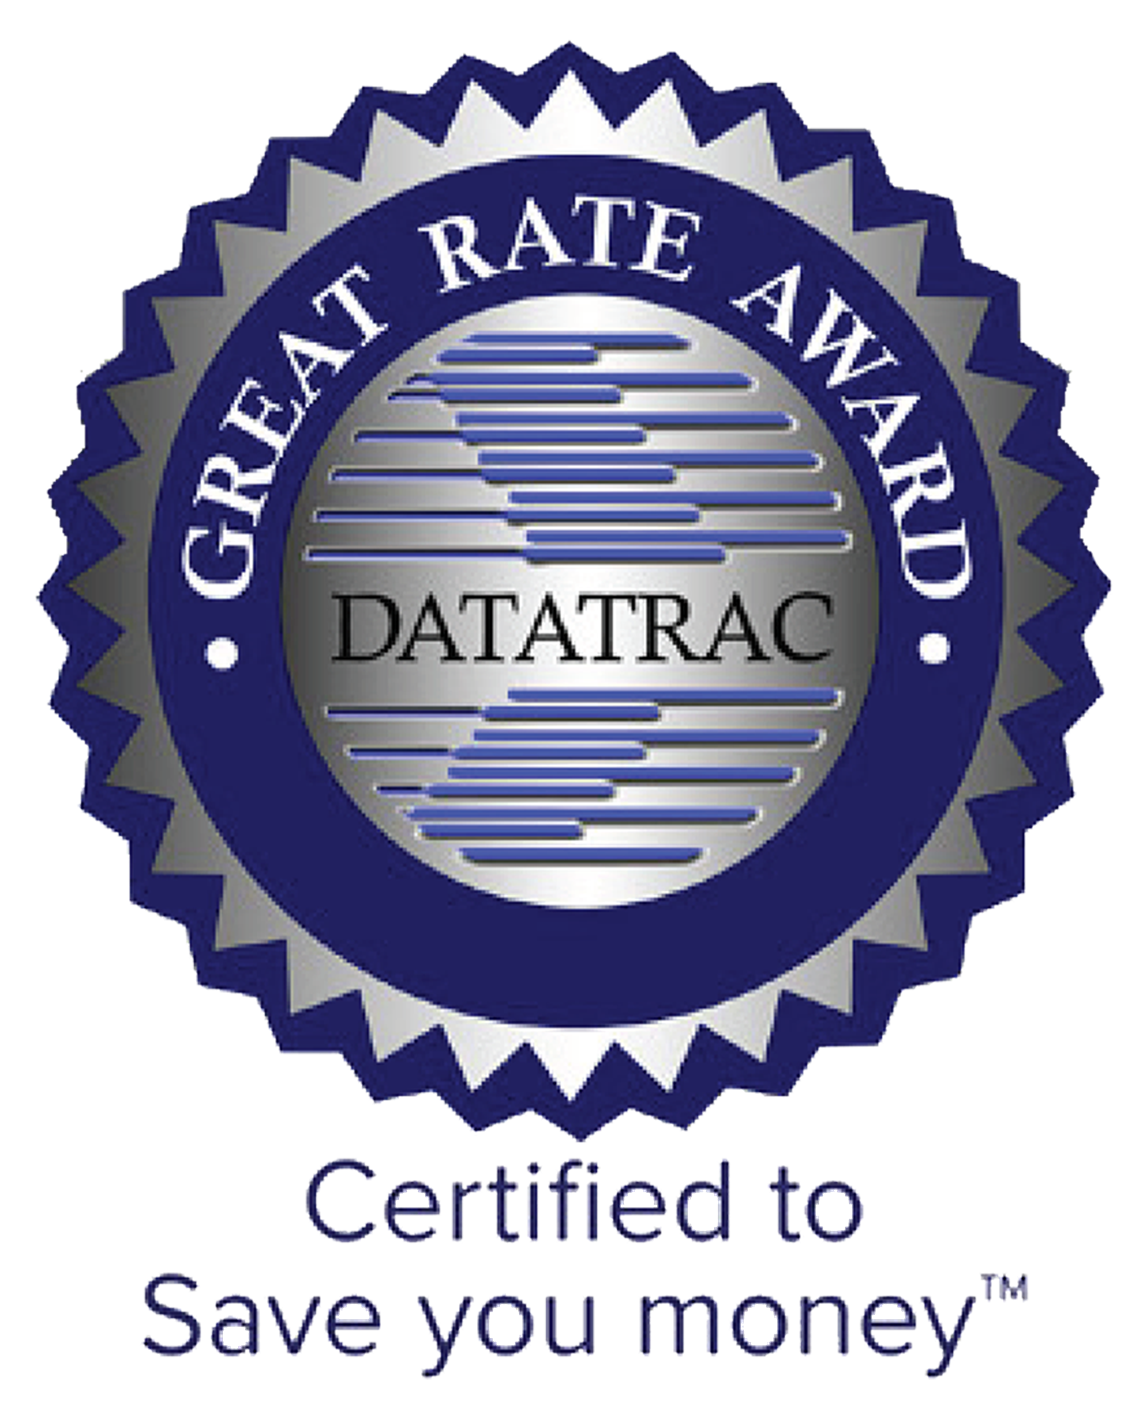 Great Rate Award